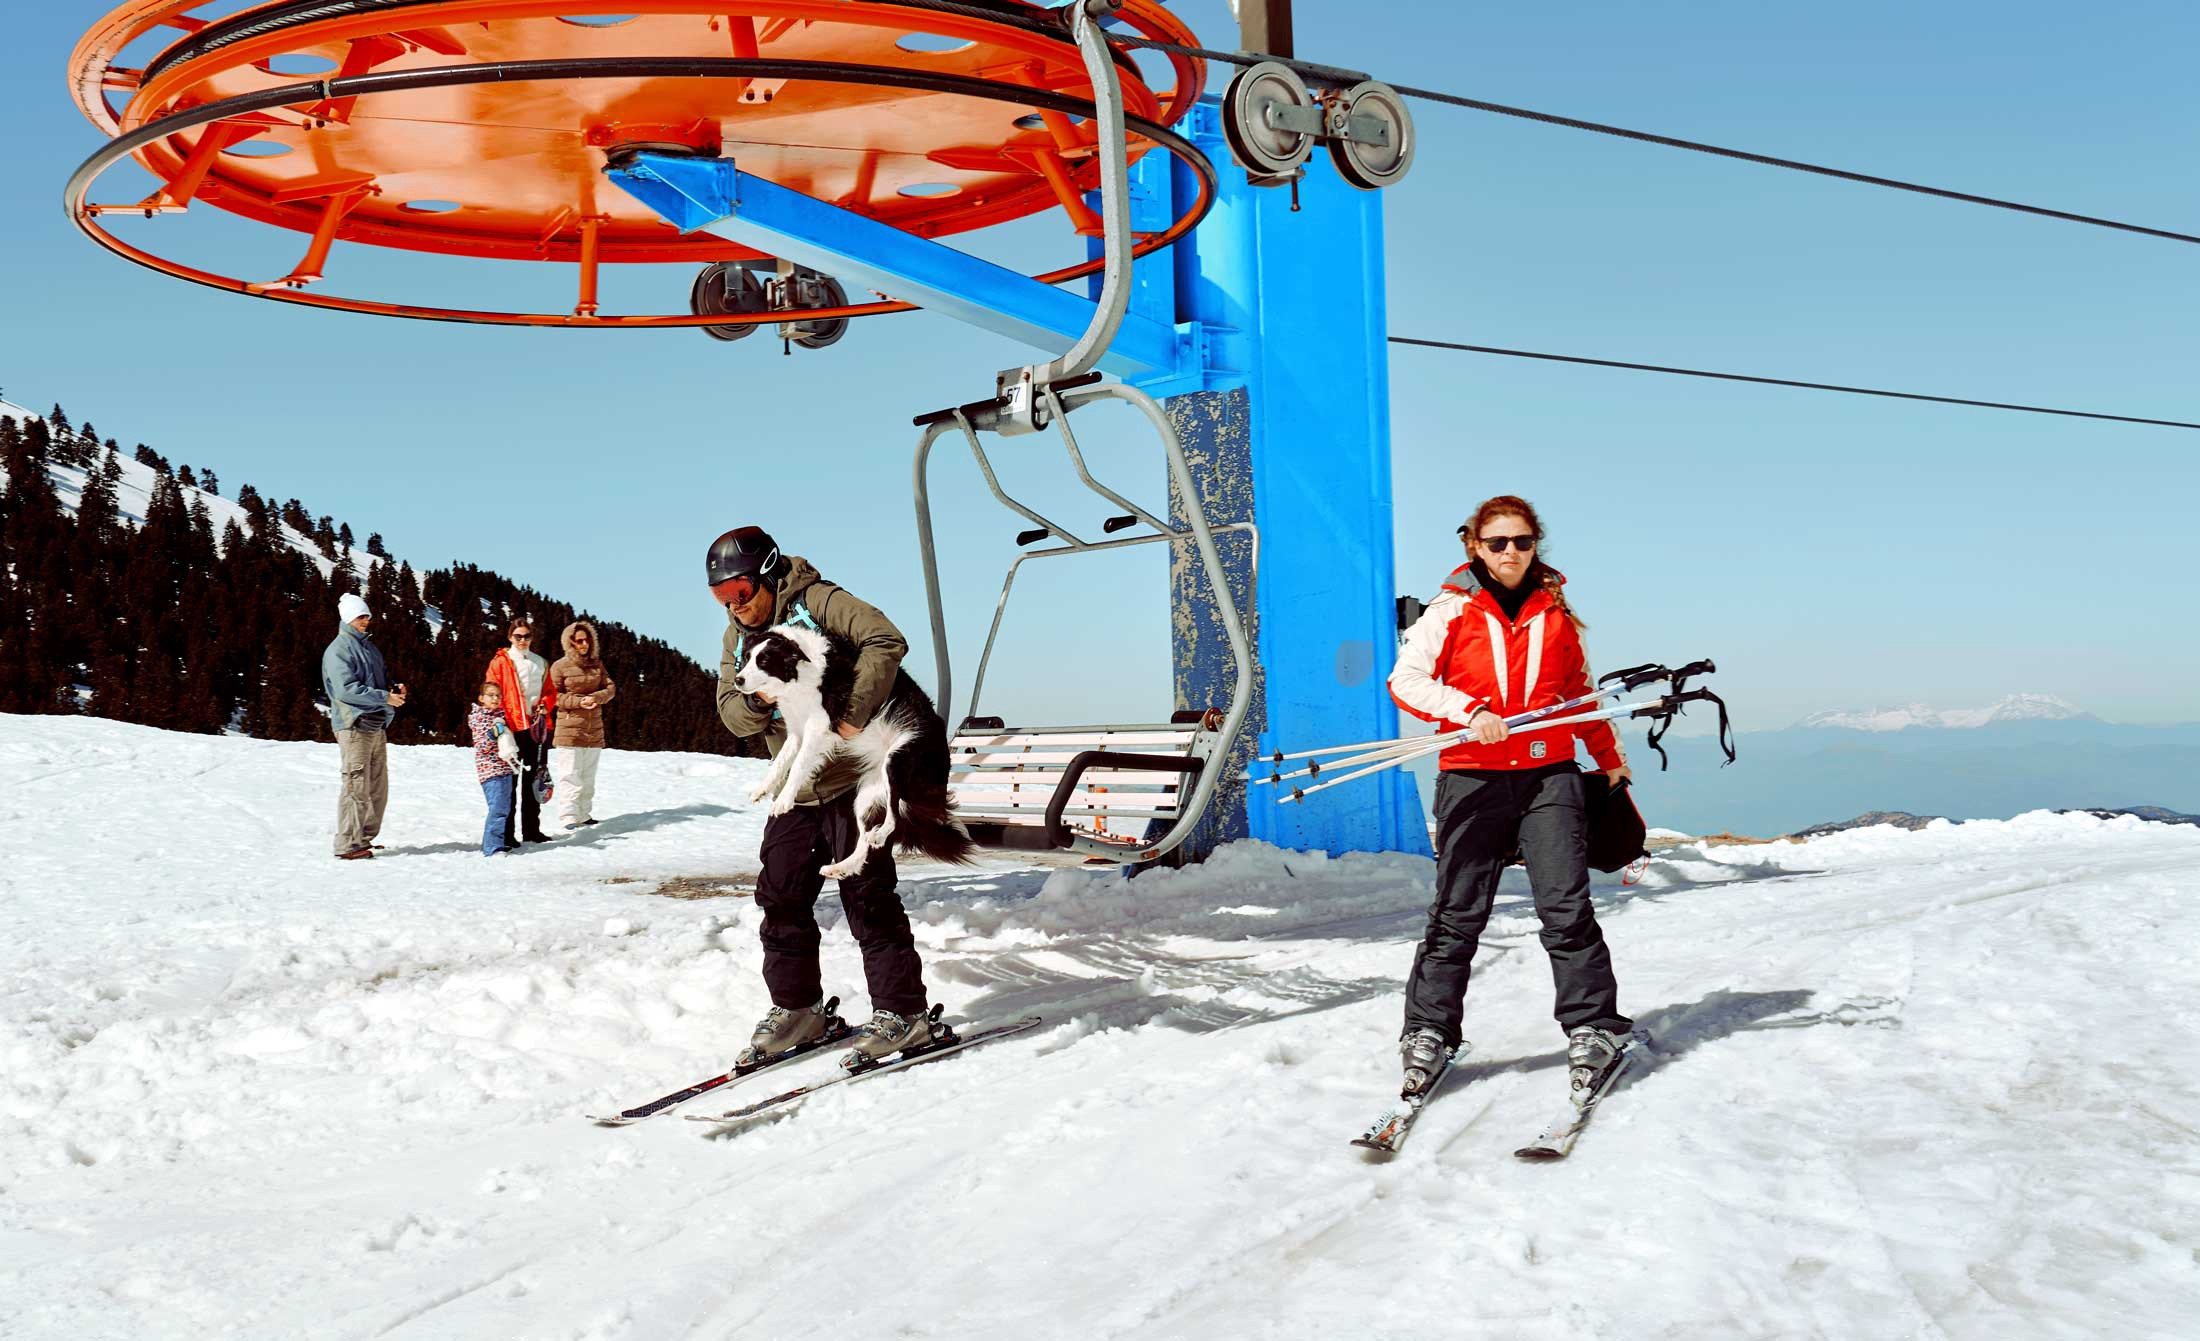 Skiers (one holding a dog) atop the ski lift at Mount Helmos in Greece.